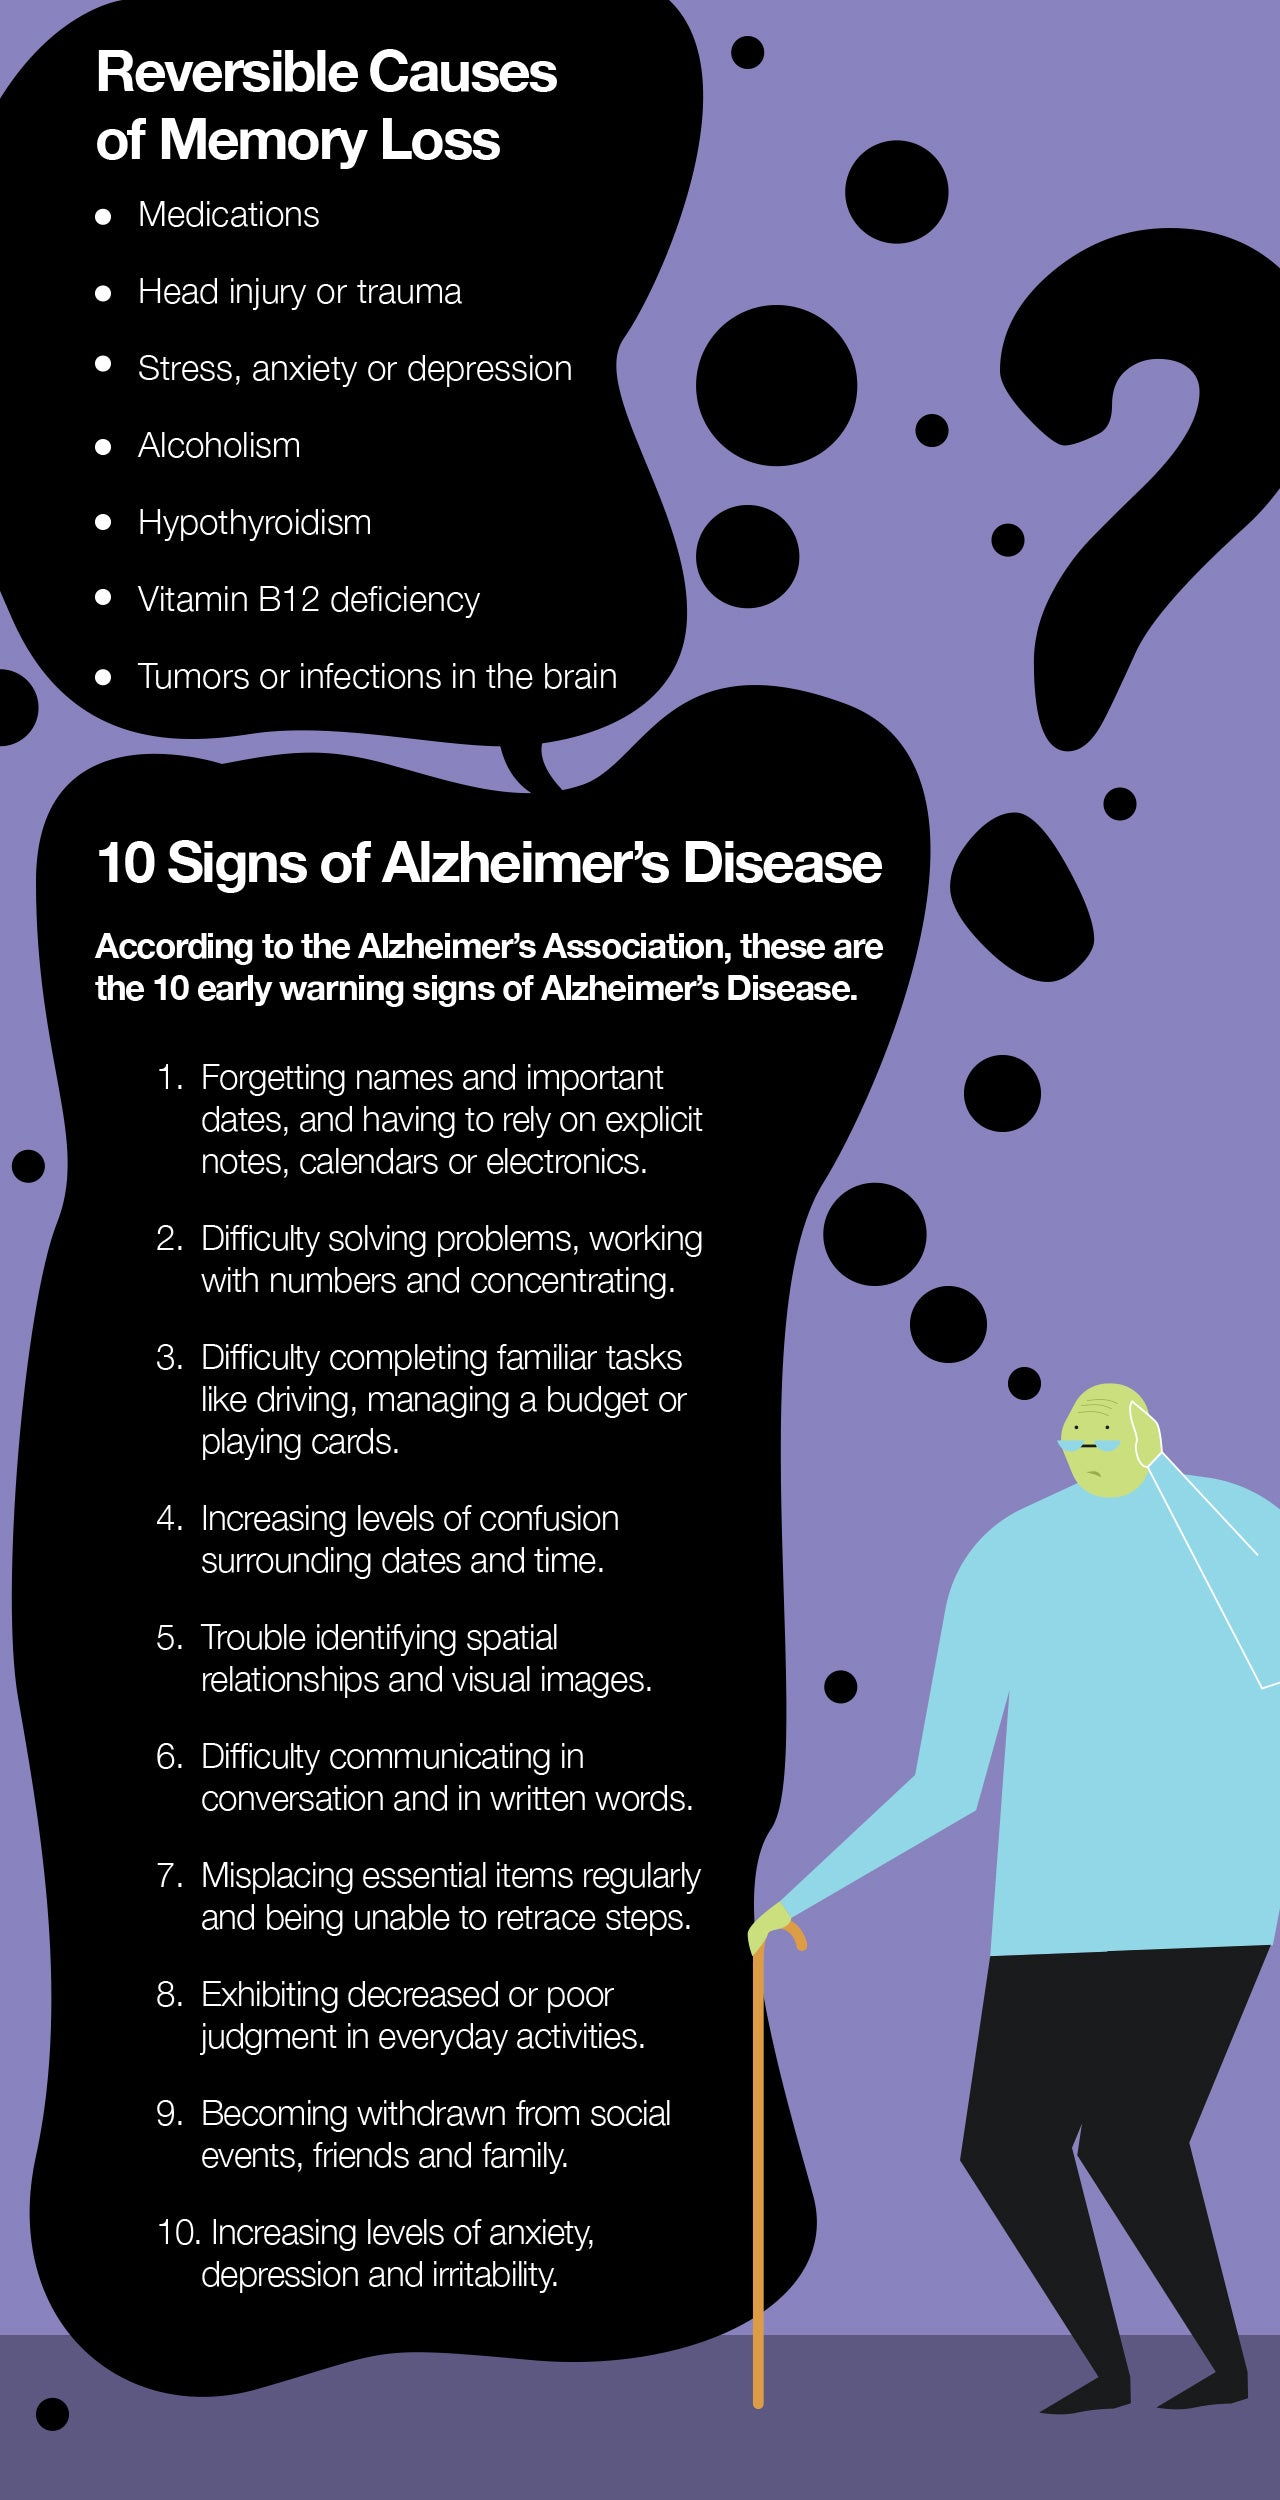 Causes of memory loss and signs of Alzheimer's